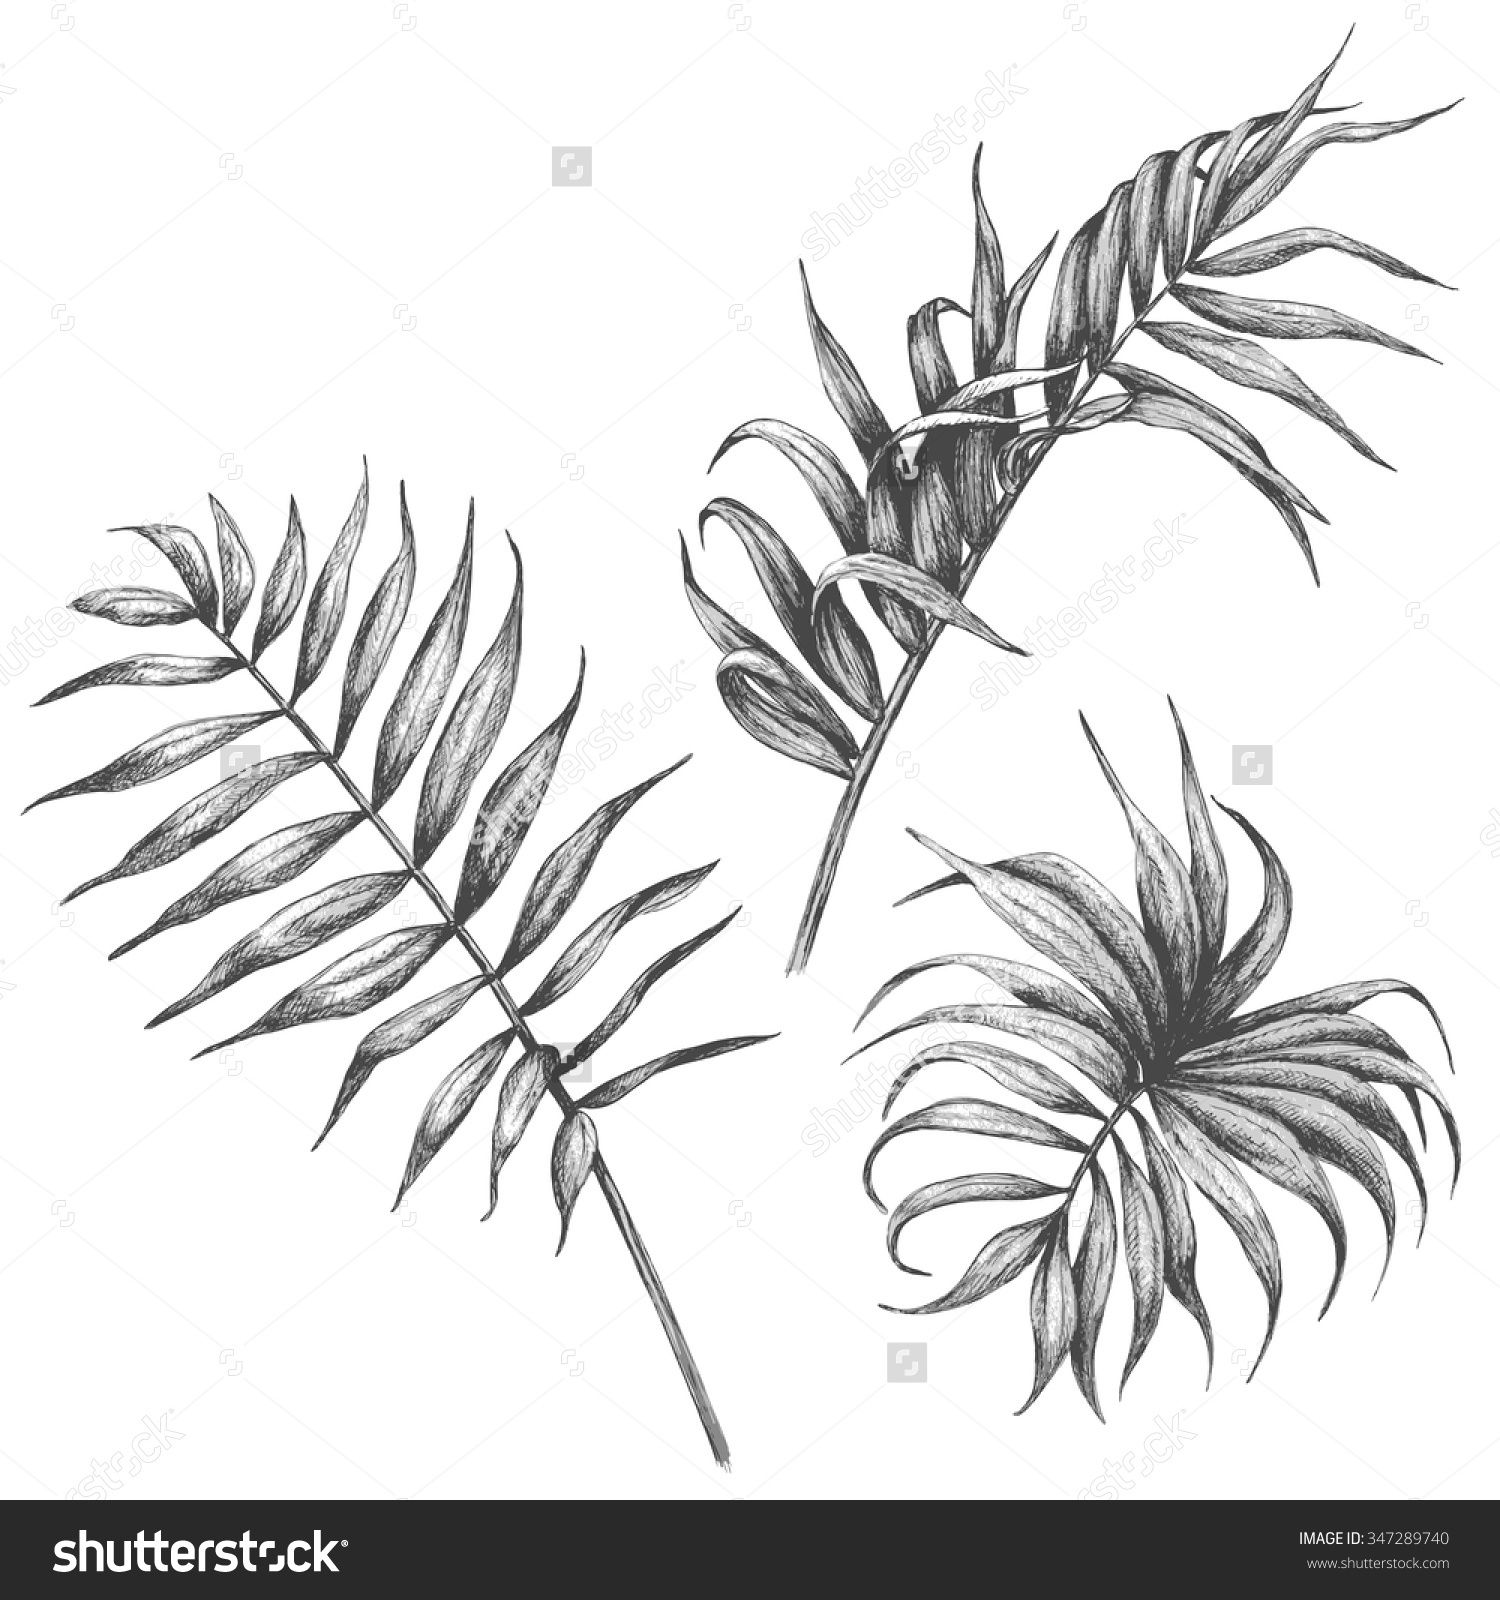 Uncategorized Leaves To Draw palm leaf drawing google search more